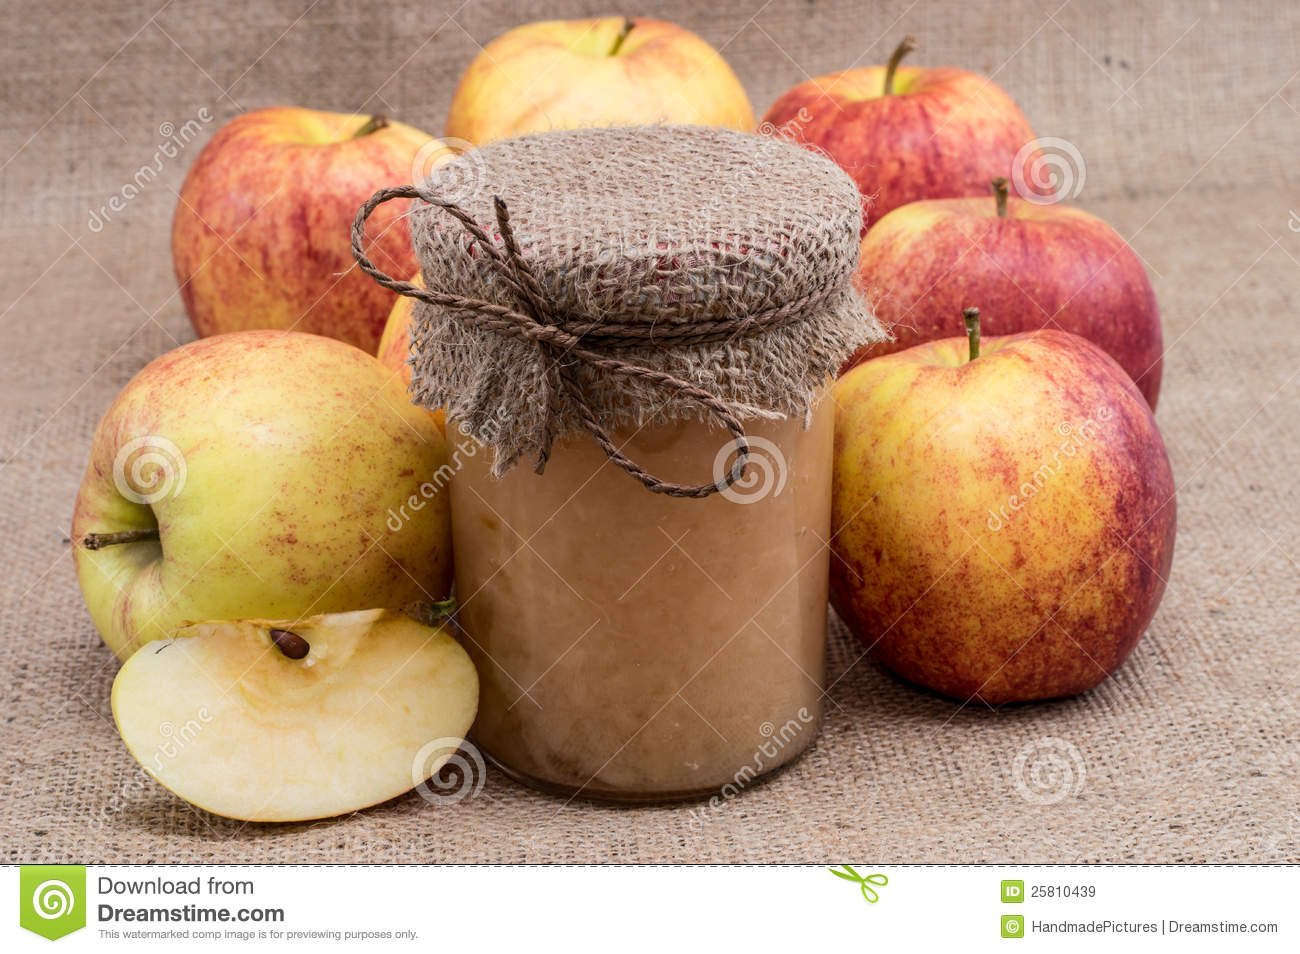 how to make applesauce from fresh apples